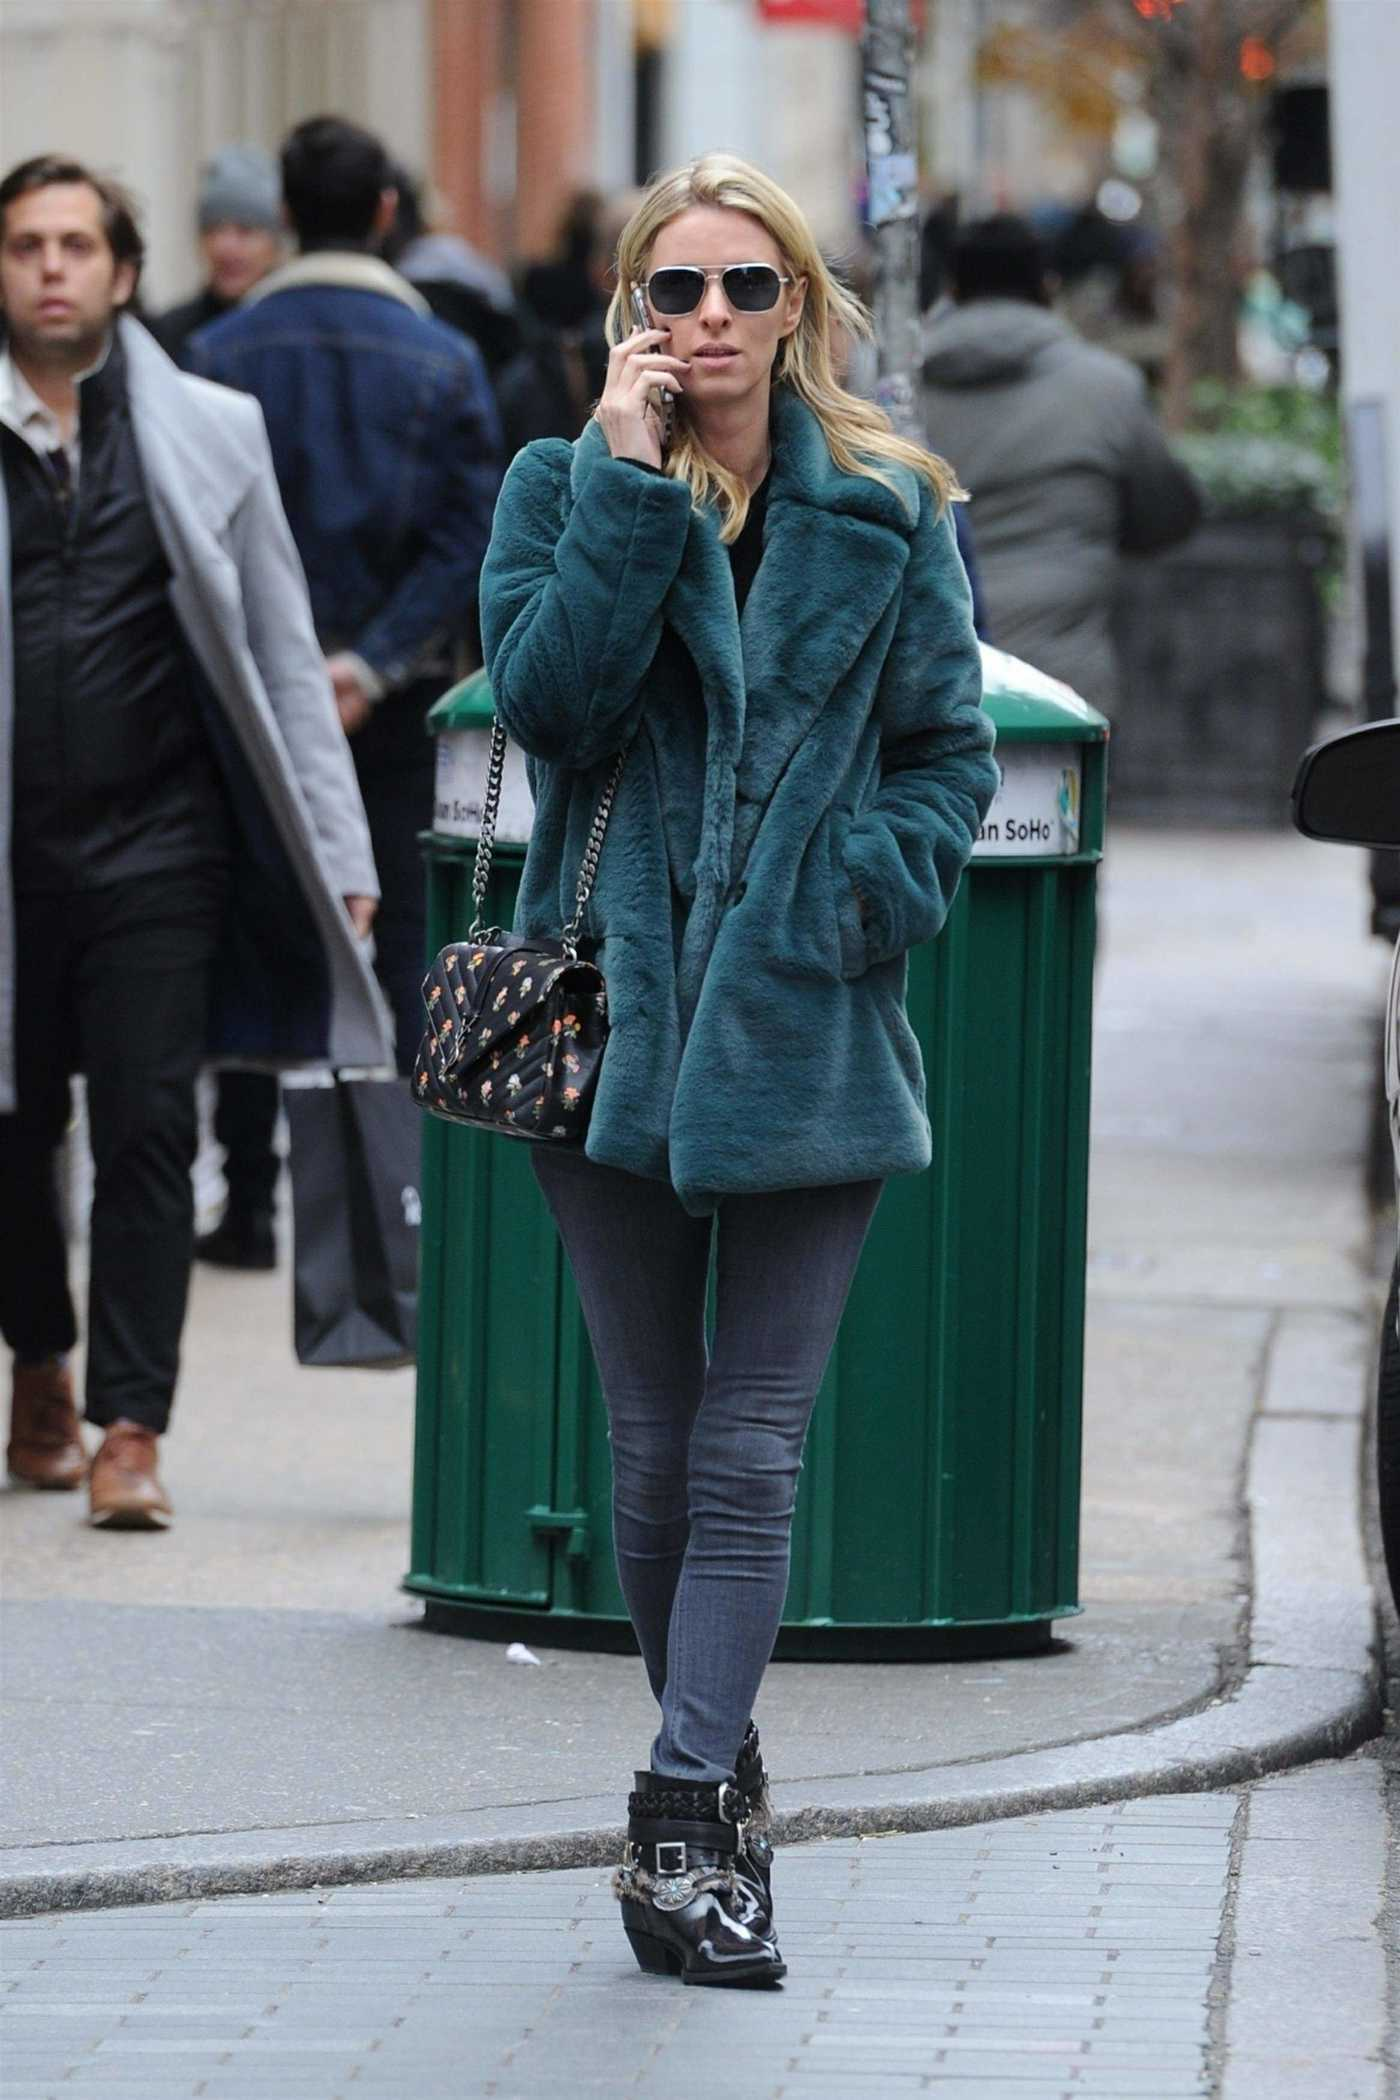 Nicky Hilton in a Short Green Fur Coat Was Seen Out in Soho, New York City 11/27/2018